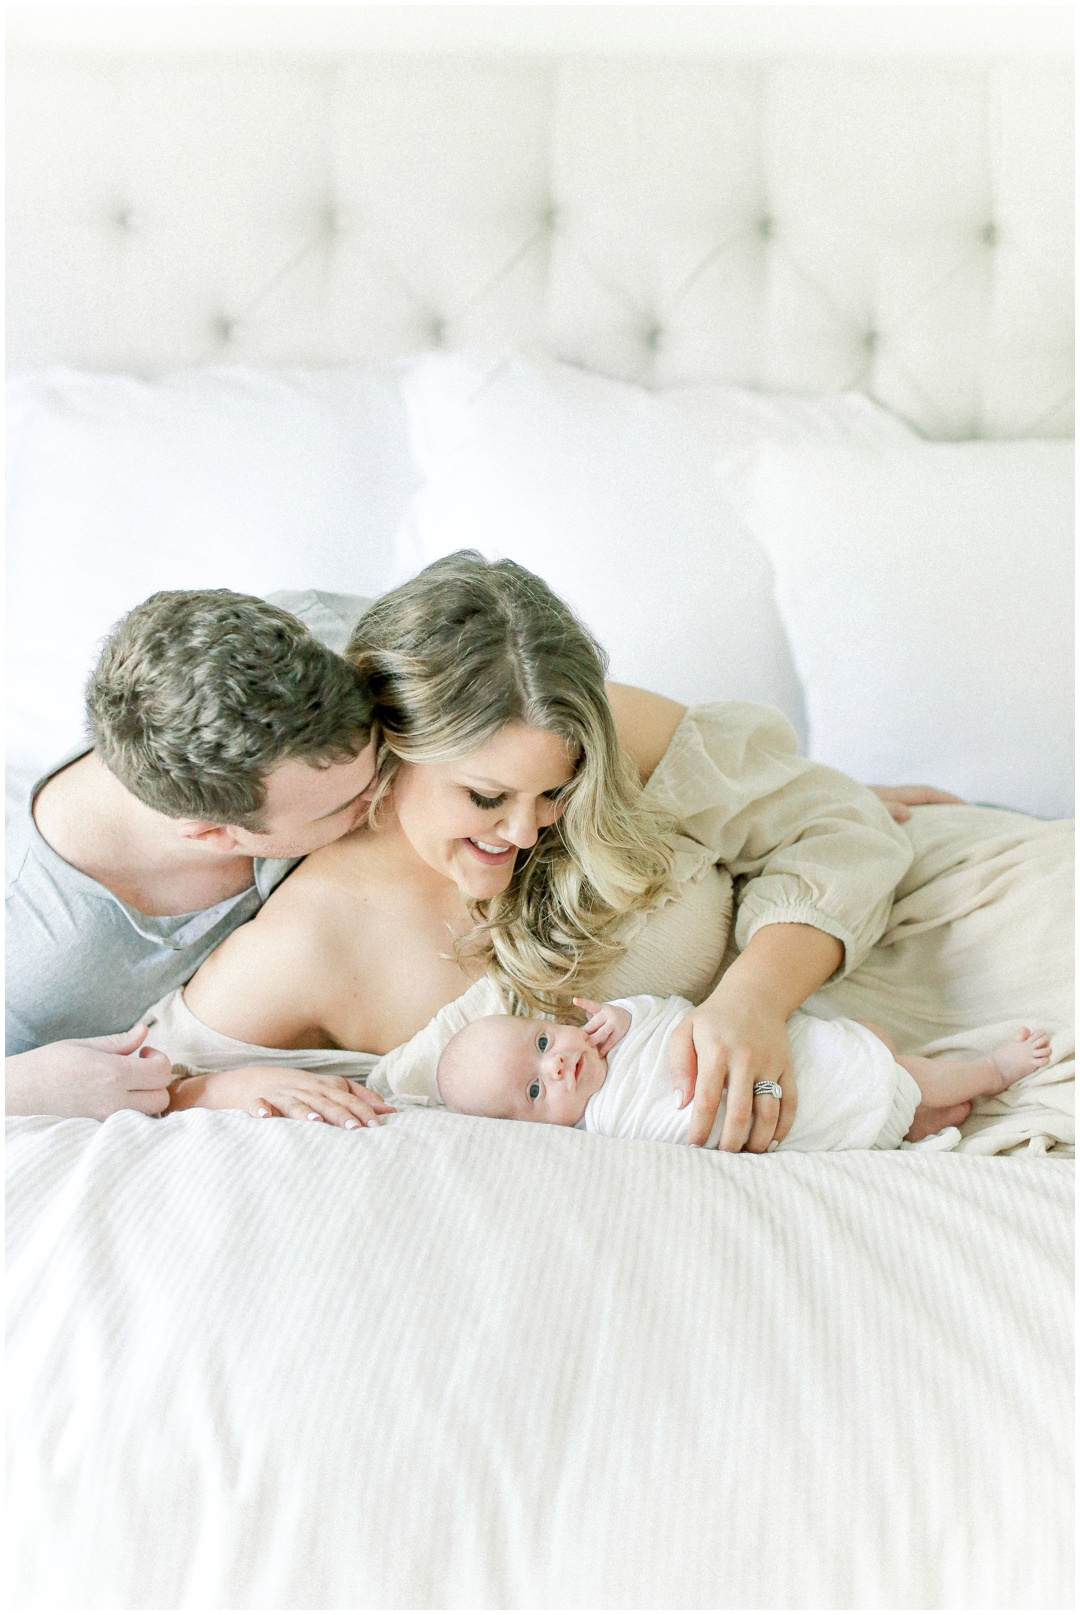 Newport_Beach_Newborn_Light_Airy_Natural_Photographer_Newport_Beach_In-Home_Photographer_Orange_County_Family_Photographer_Cori_Kleckner_Photography_Huntington_Beach_Photographer_Family_OC_Newborn_Meghan_Sullivan_Newborn_Family_Greer_Sullivan_3258.jpg